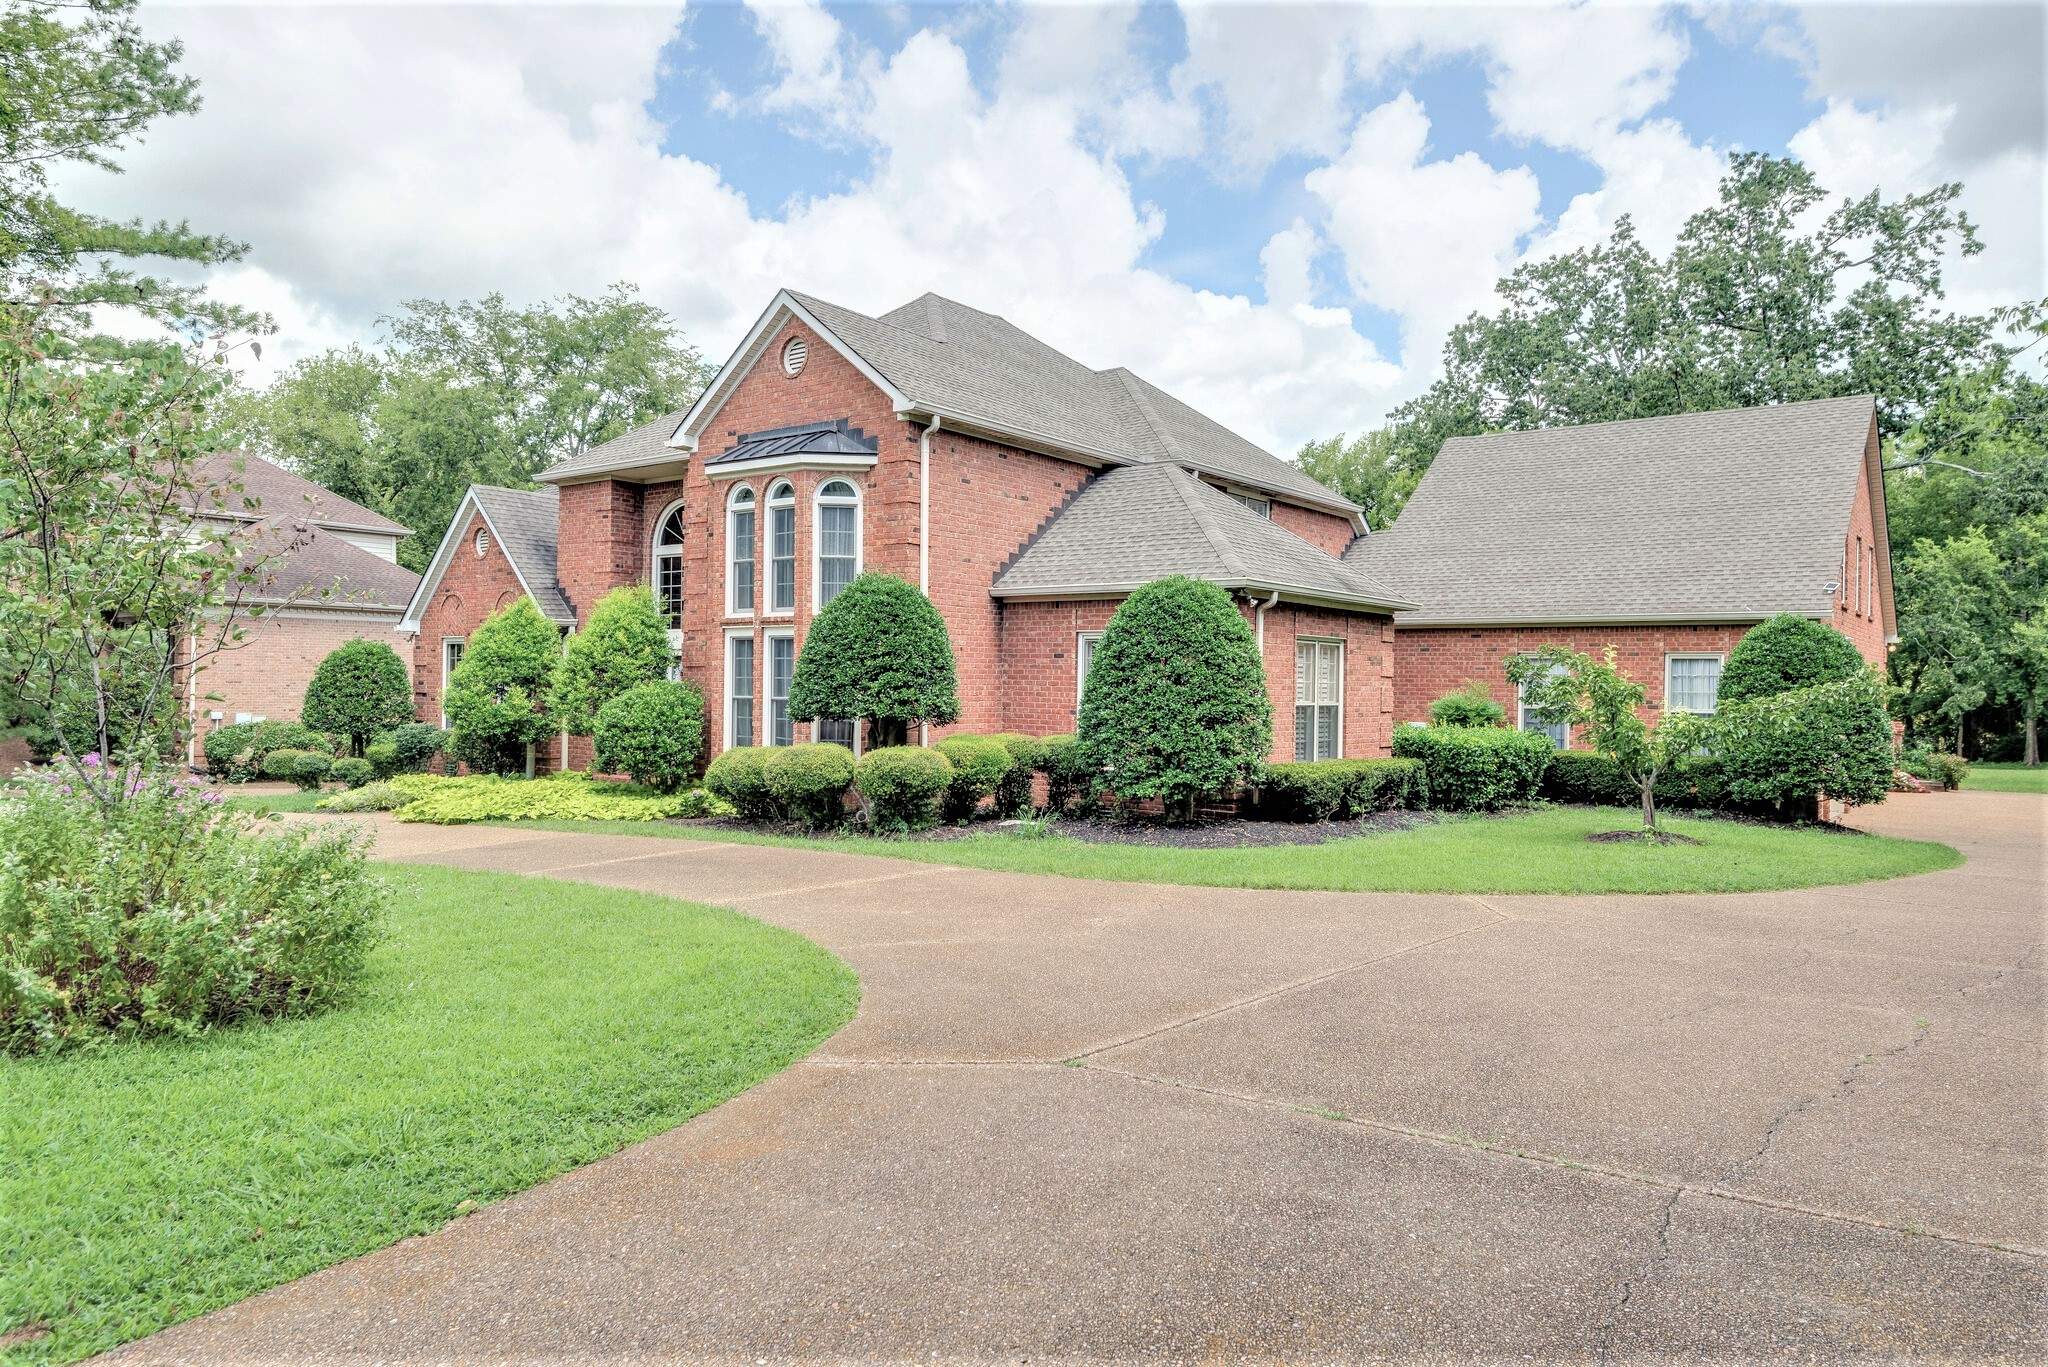 Beautiful Home in Brentwood*Updated Kitchen/Bathrooms*Hardwood Floors throughout the Main Level*Master Bedroom Down w/Gorgeous Ensuite Bath*Formal Living-room w/Magnificent Chandelier & Floor-to-Top Window*WET BAR*Family room w/Fireplace*Large Bonus room above the Garage for Multipurpose/Entertainment*Attached 3-Car Garage w/Additional Paved Parking*About 1 ACRE LEVEL LOT w/Trees, Covered Porch, Huge Deck for Great Outdoor Fun*Incredible SCHOOL District* See VIRTUAL TOUR below.